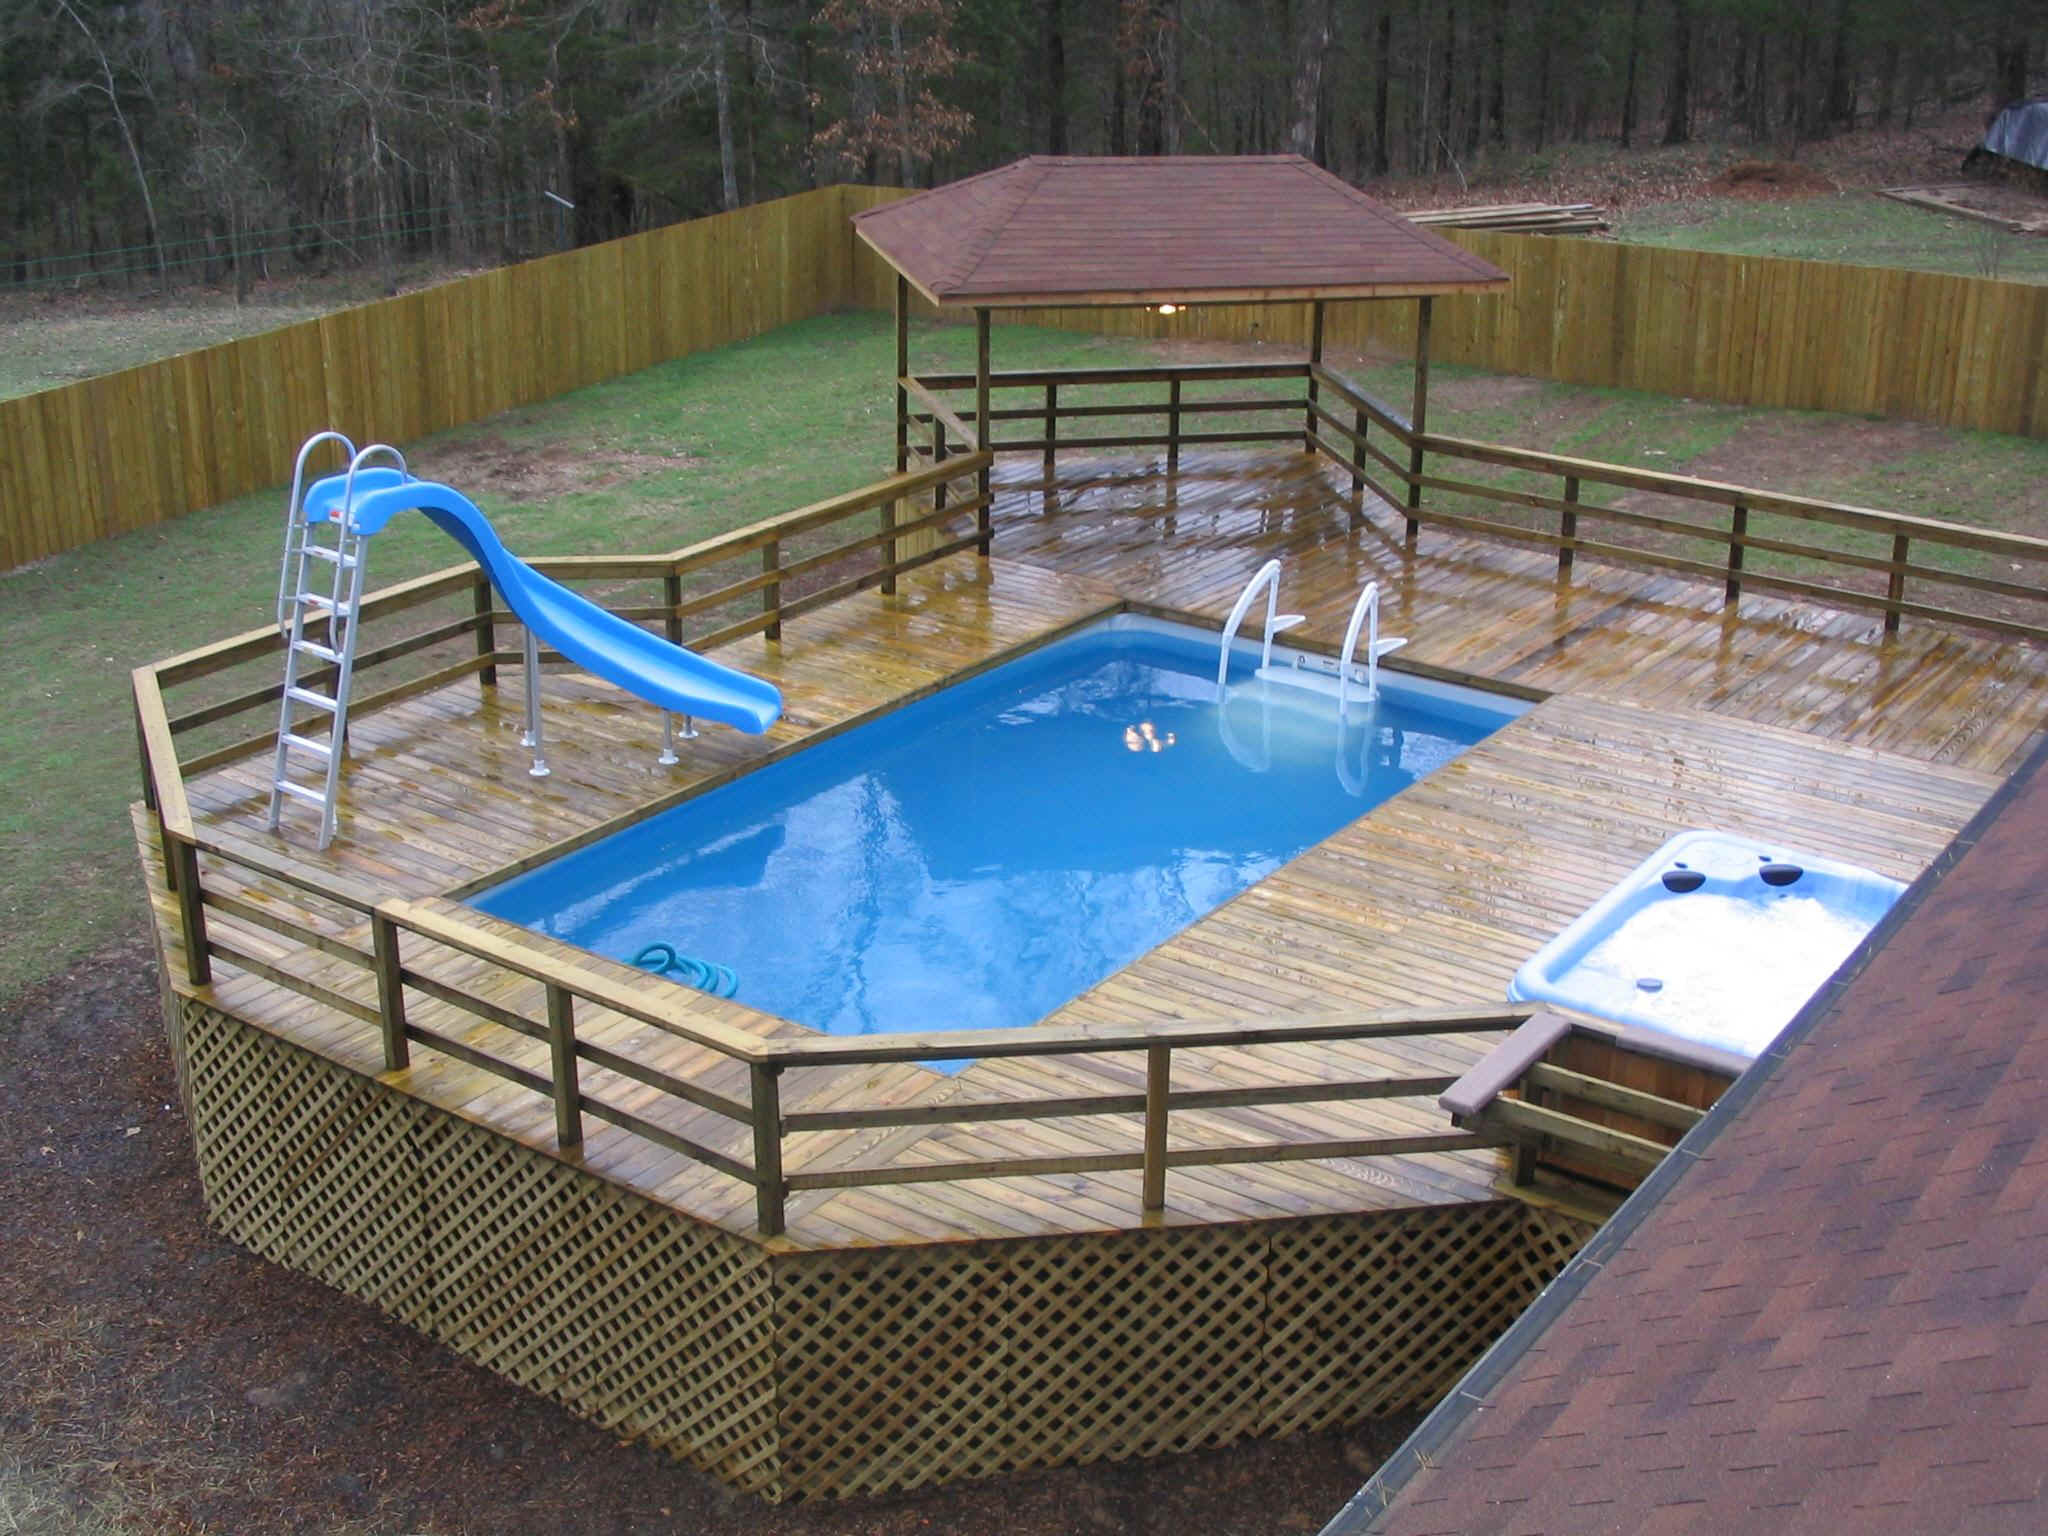 This Wooden Deck Construction Is Of A More Simple And Practical Design. The  Slat Wooden Slides Allow For Access To The Workings Of The Pool, While The  Fully ...